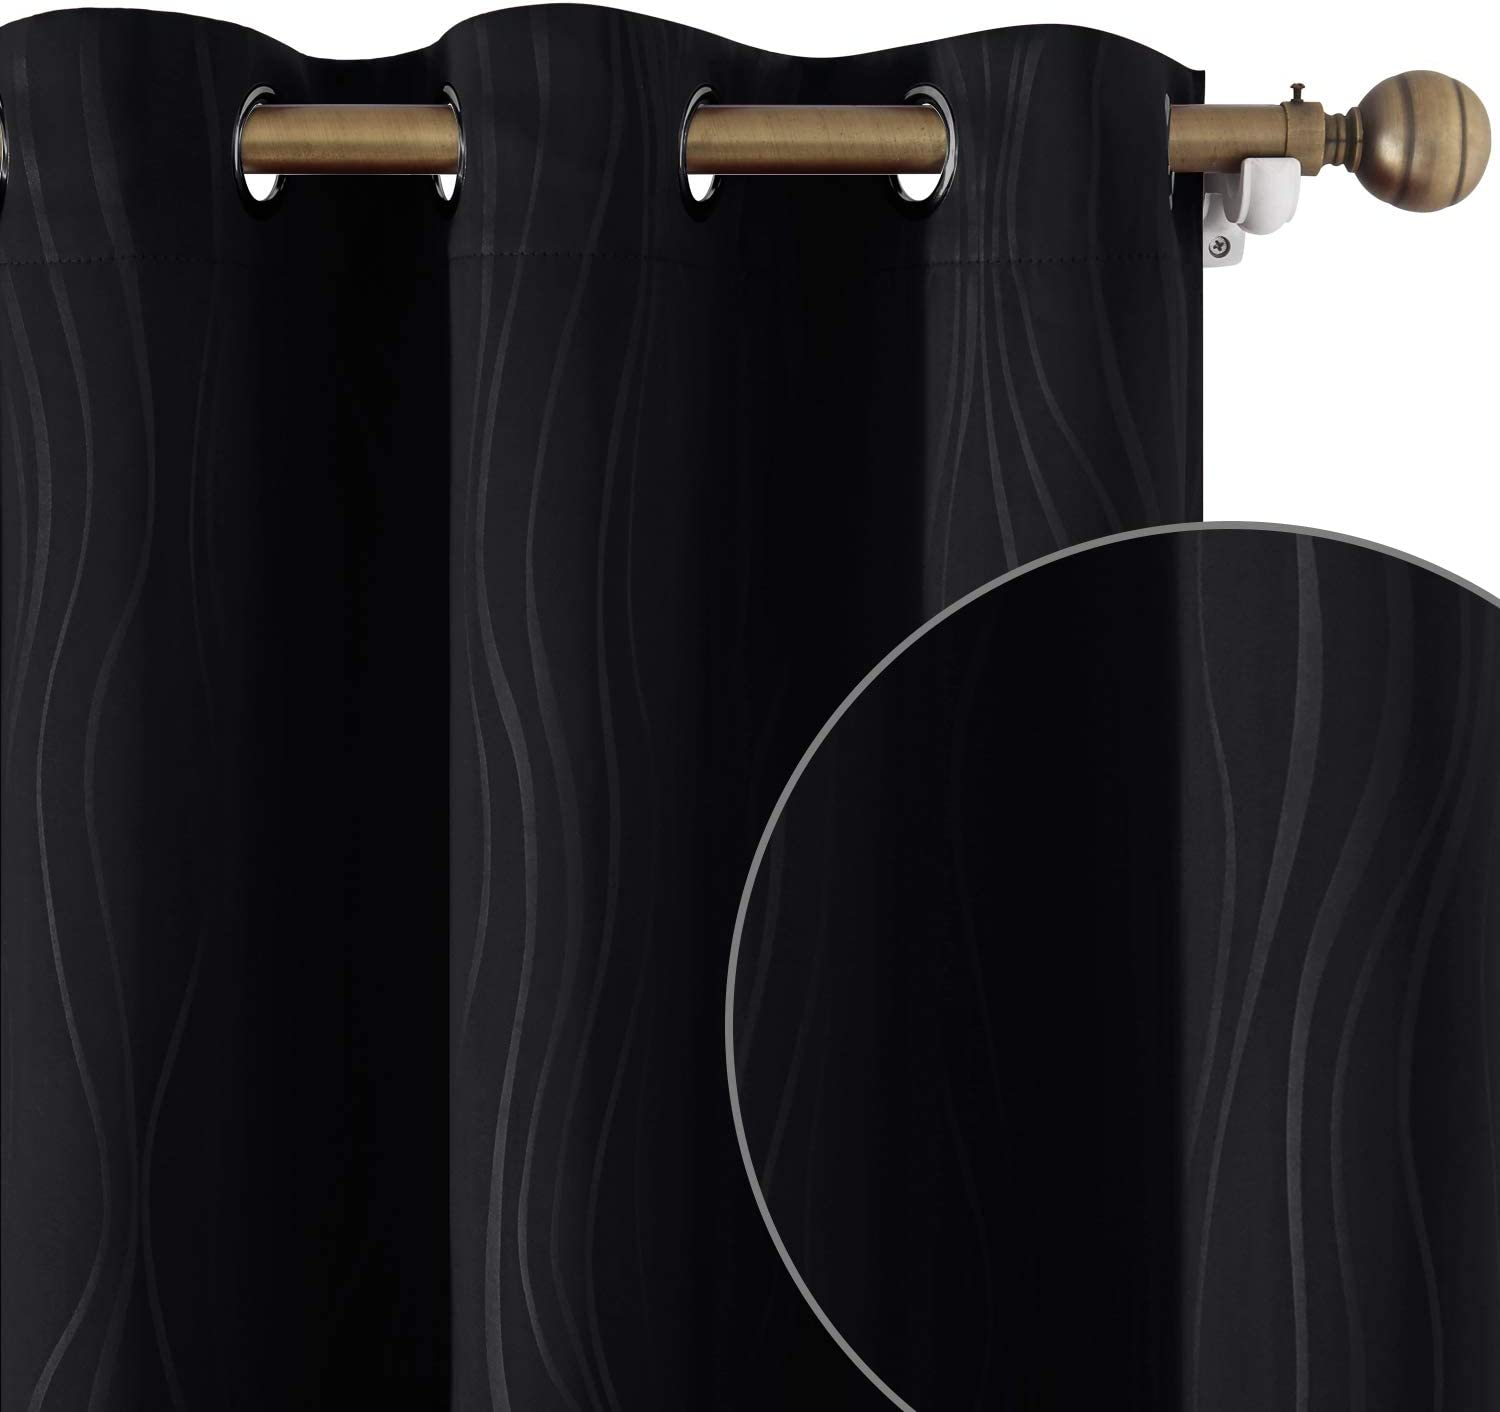 HOMEIDEAS Black Blackout Curtains 52 X 96 Don't miss Bombing new work the campaign Length Darke Inch Room